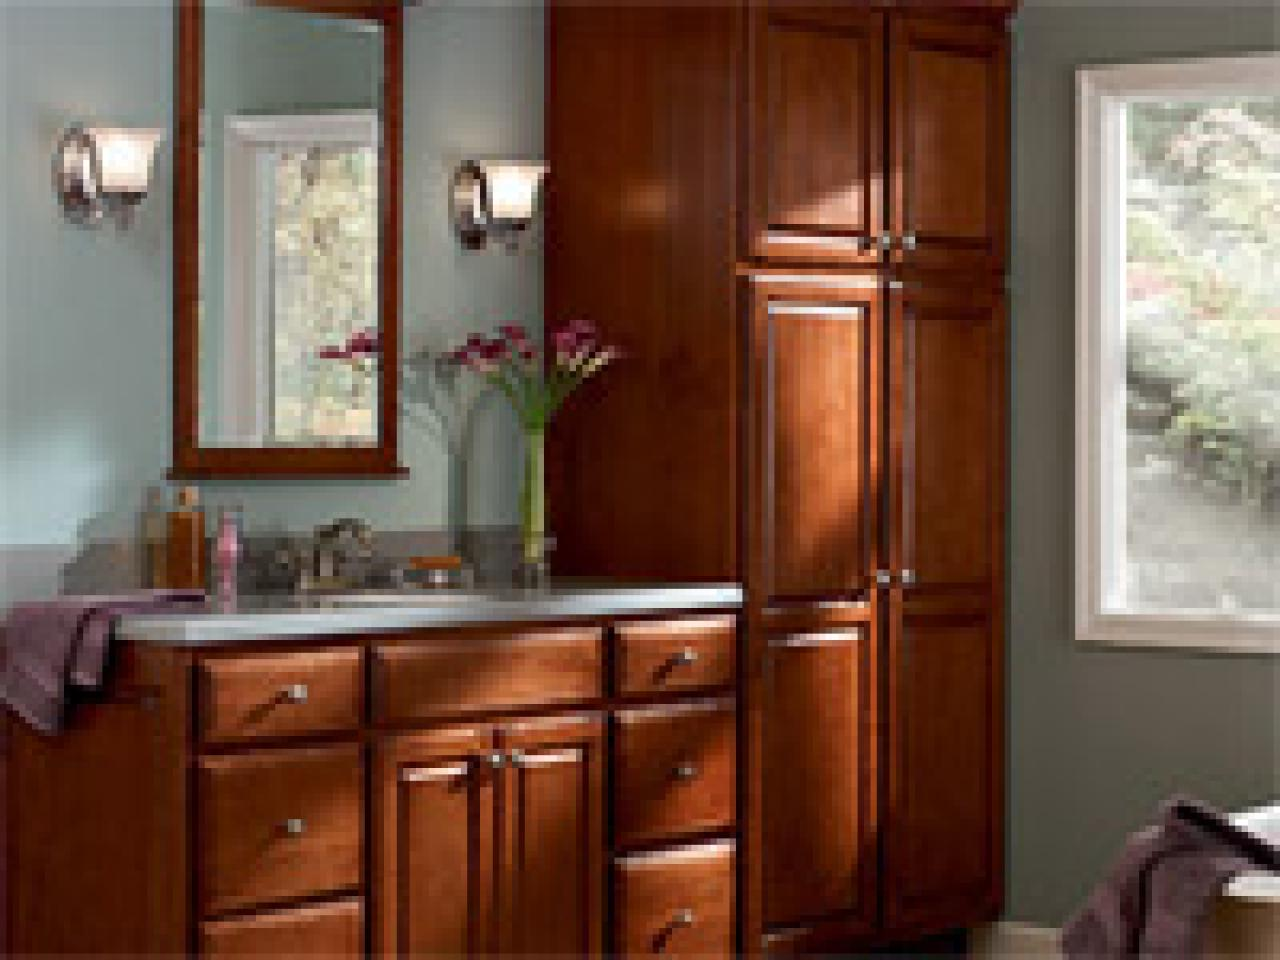 bath cabinets guide to selecting bathroom cabinets | hgtv PULDRNJ